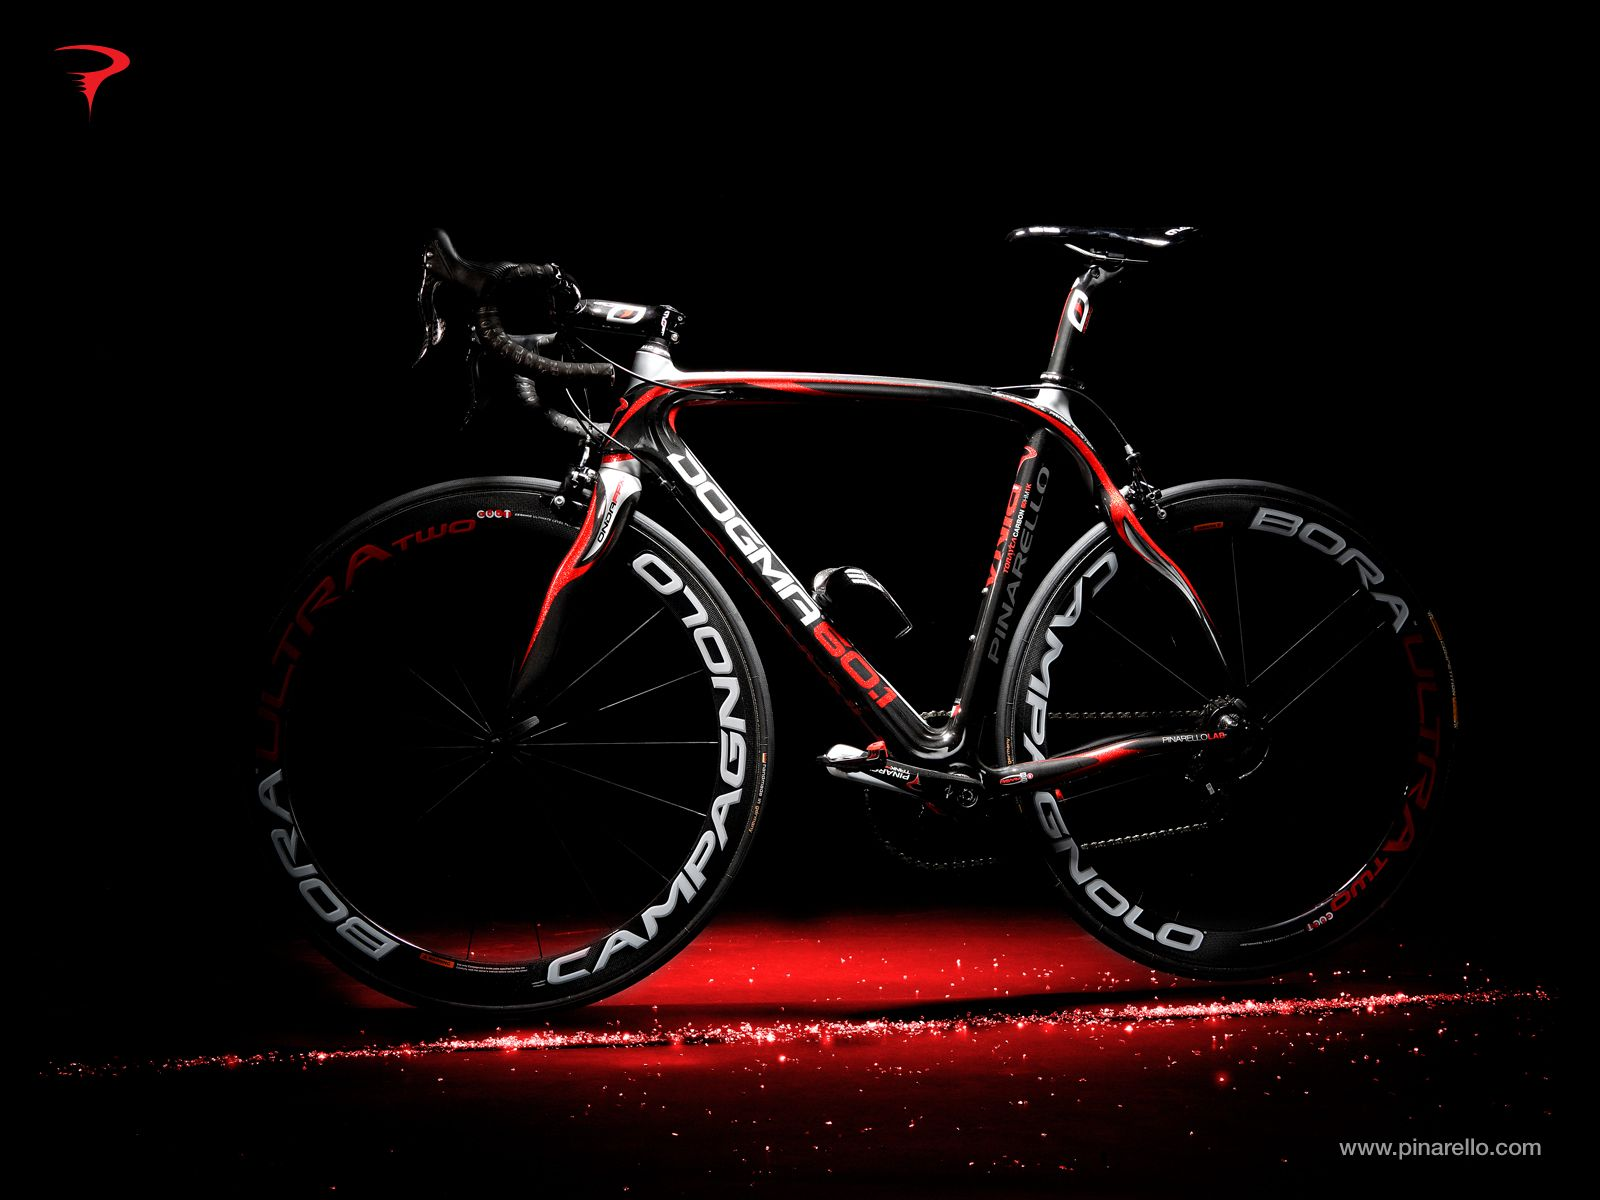 113 Best Pinarello Images On Pinterest Gopro Bicycle Design And